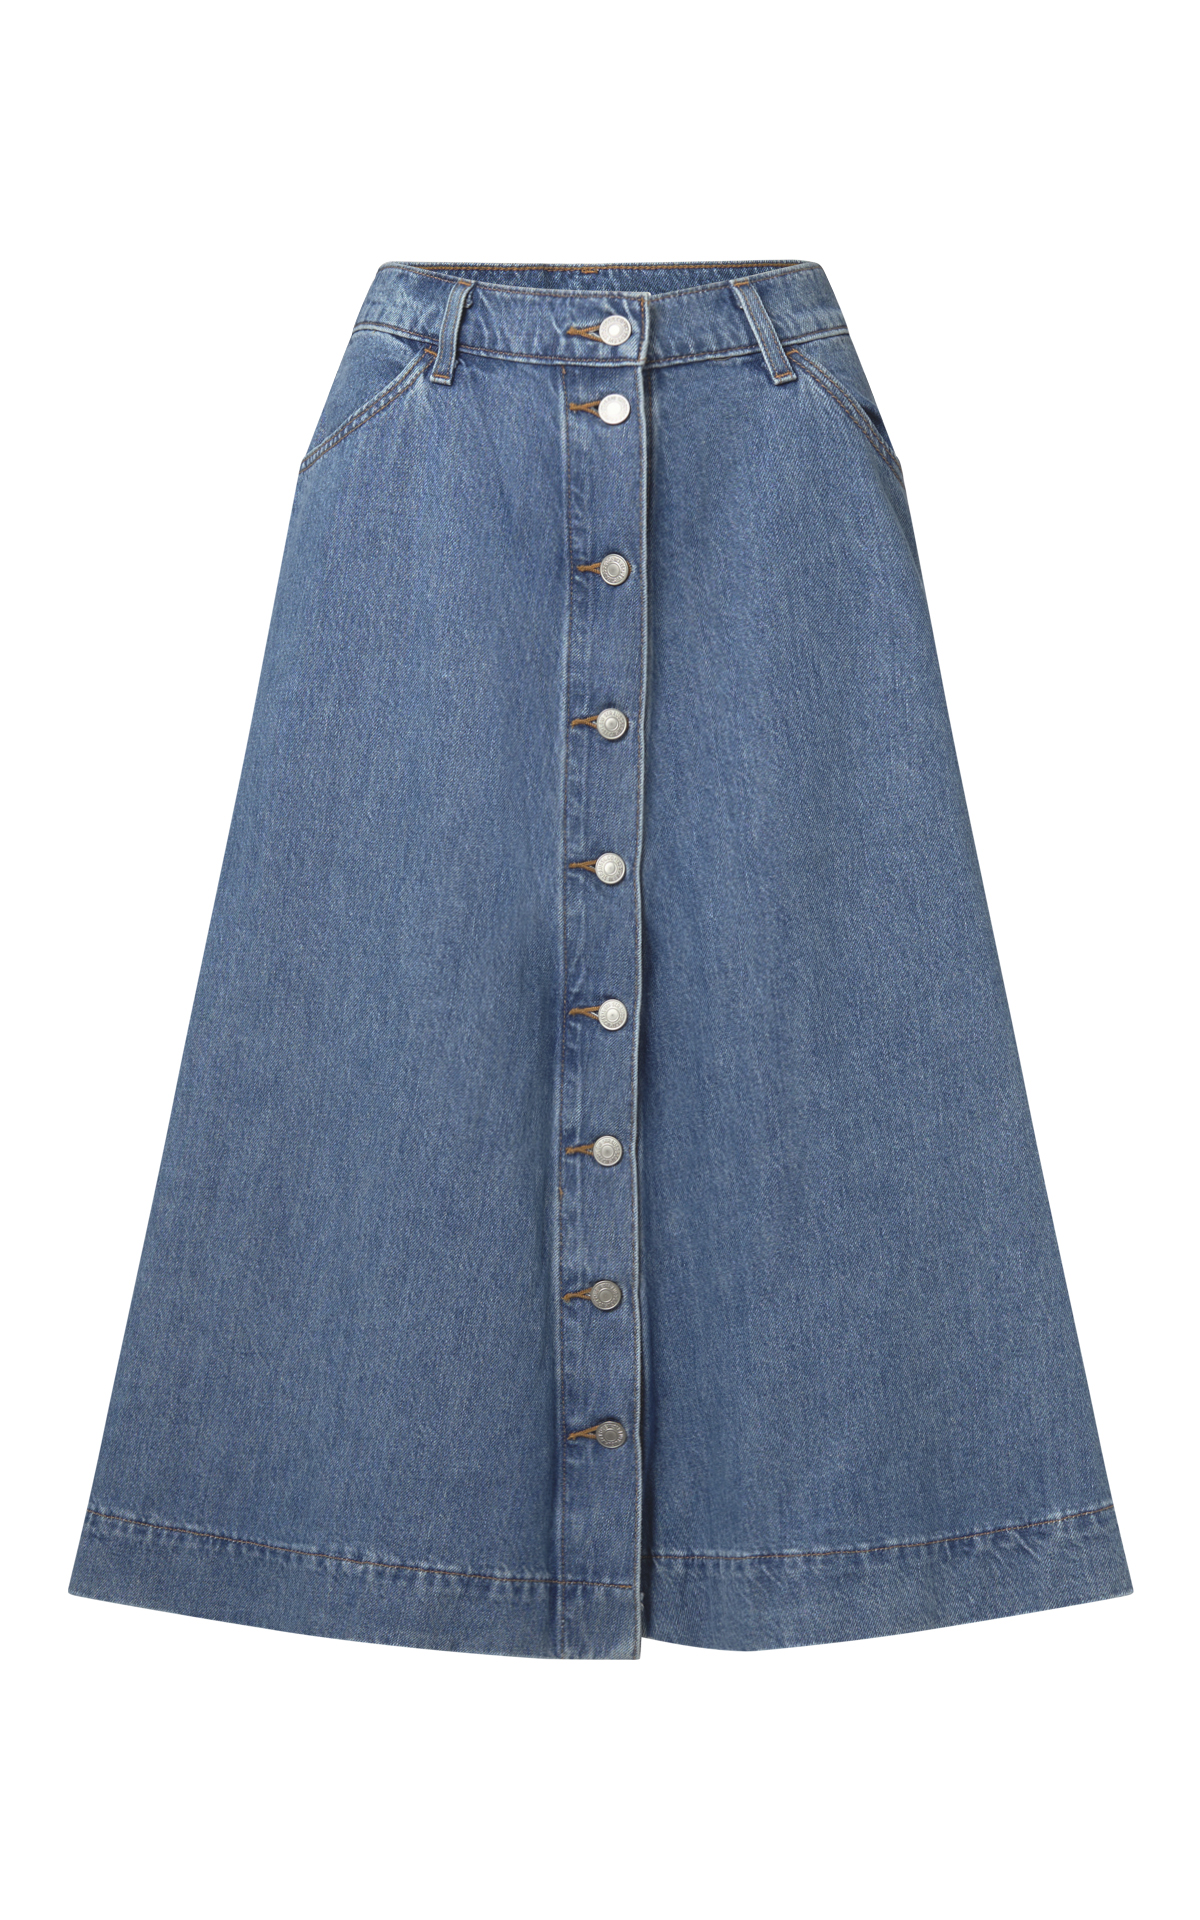 Denim skirt with buttons Levi's